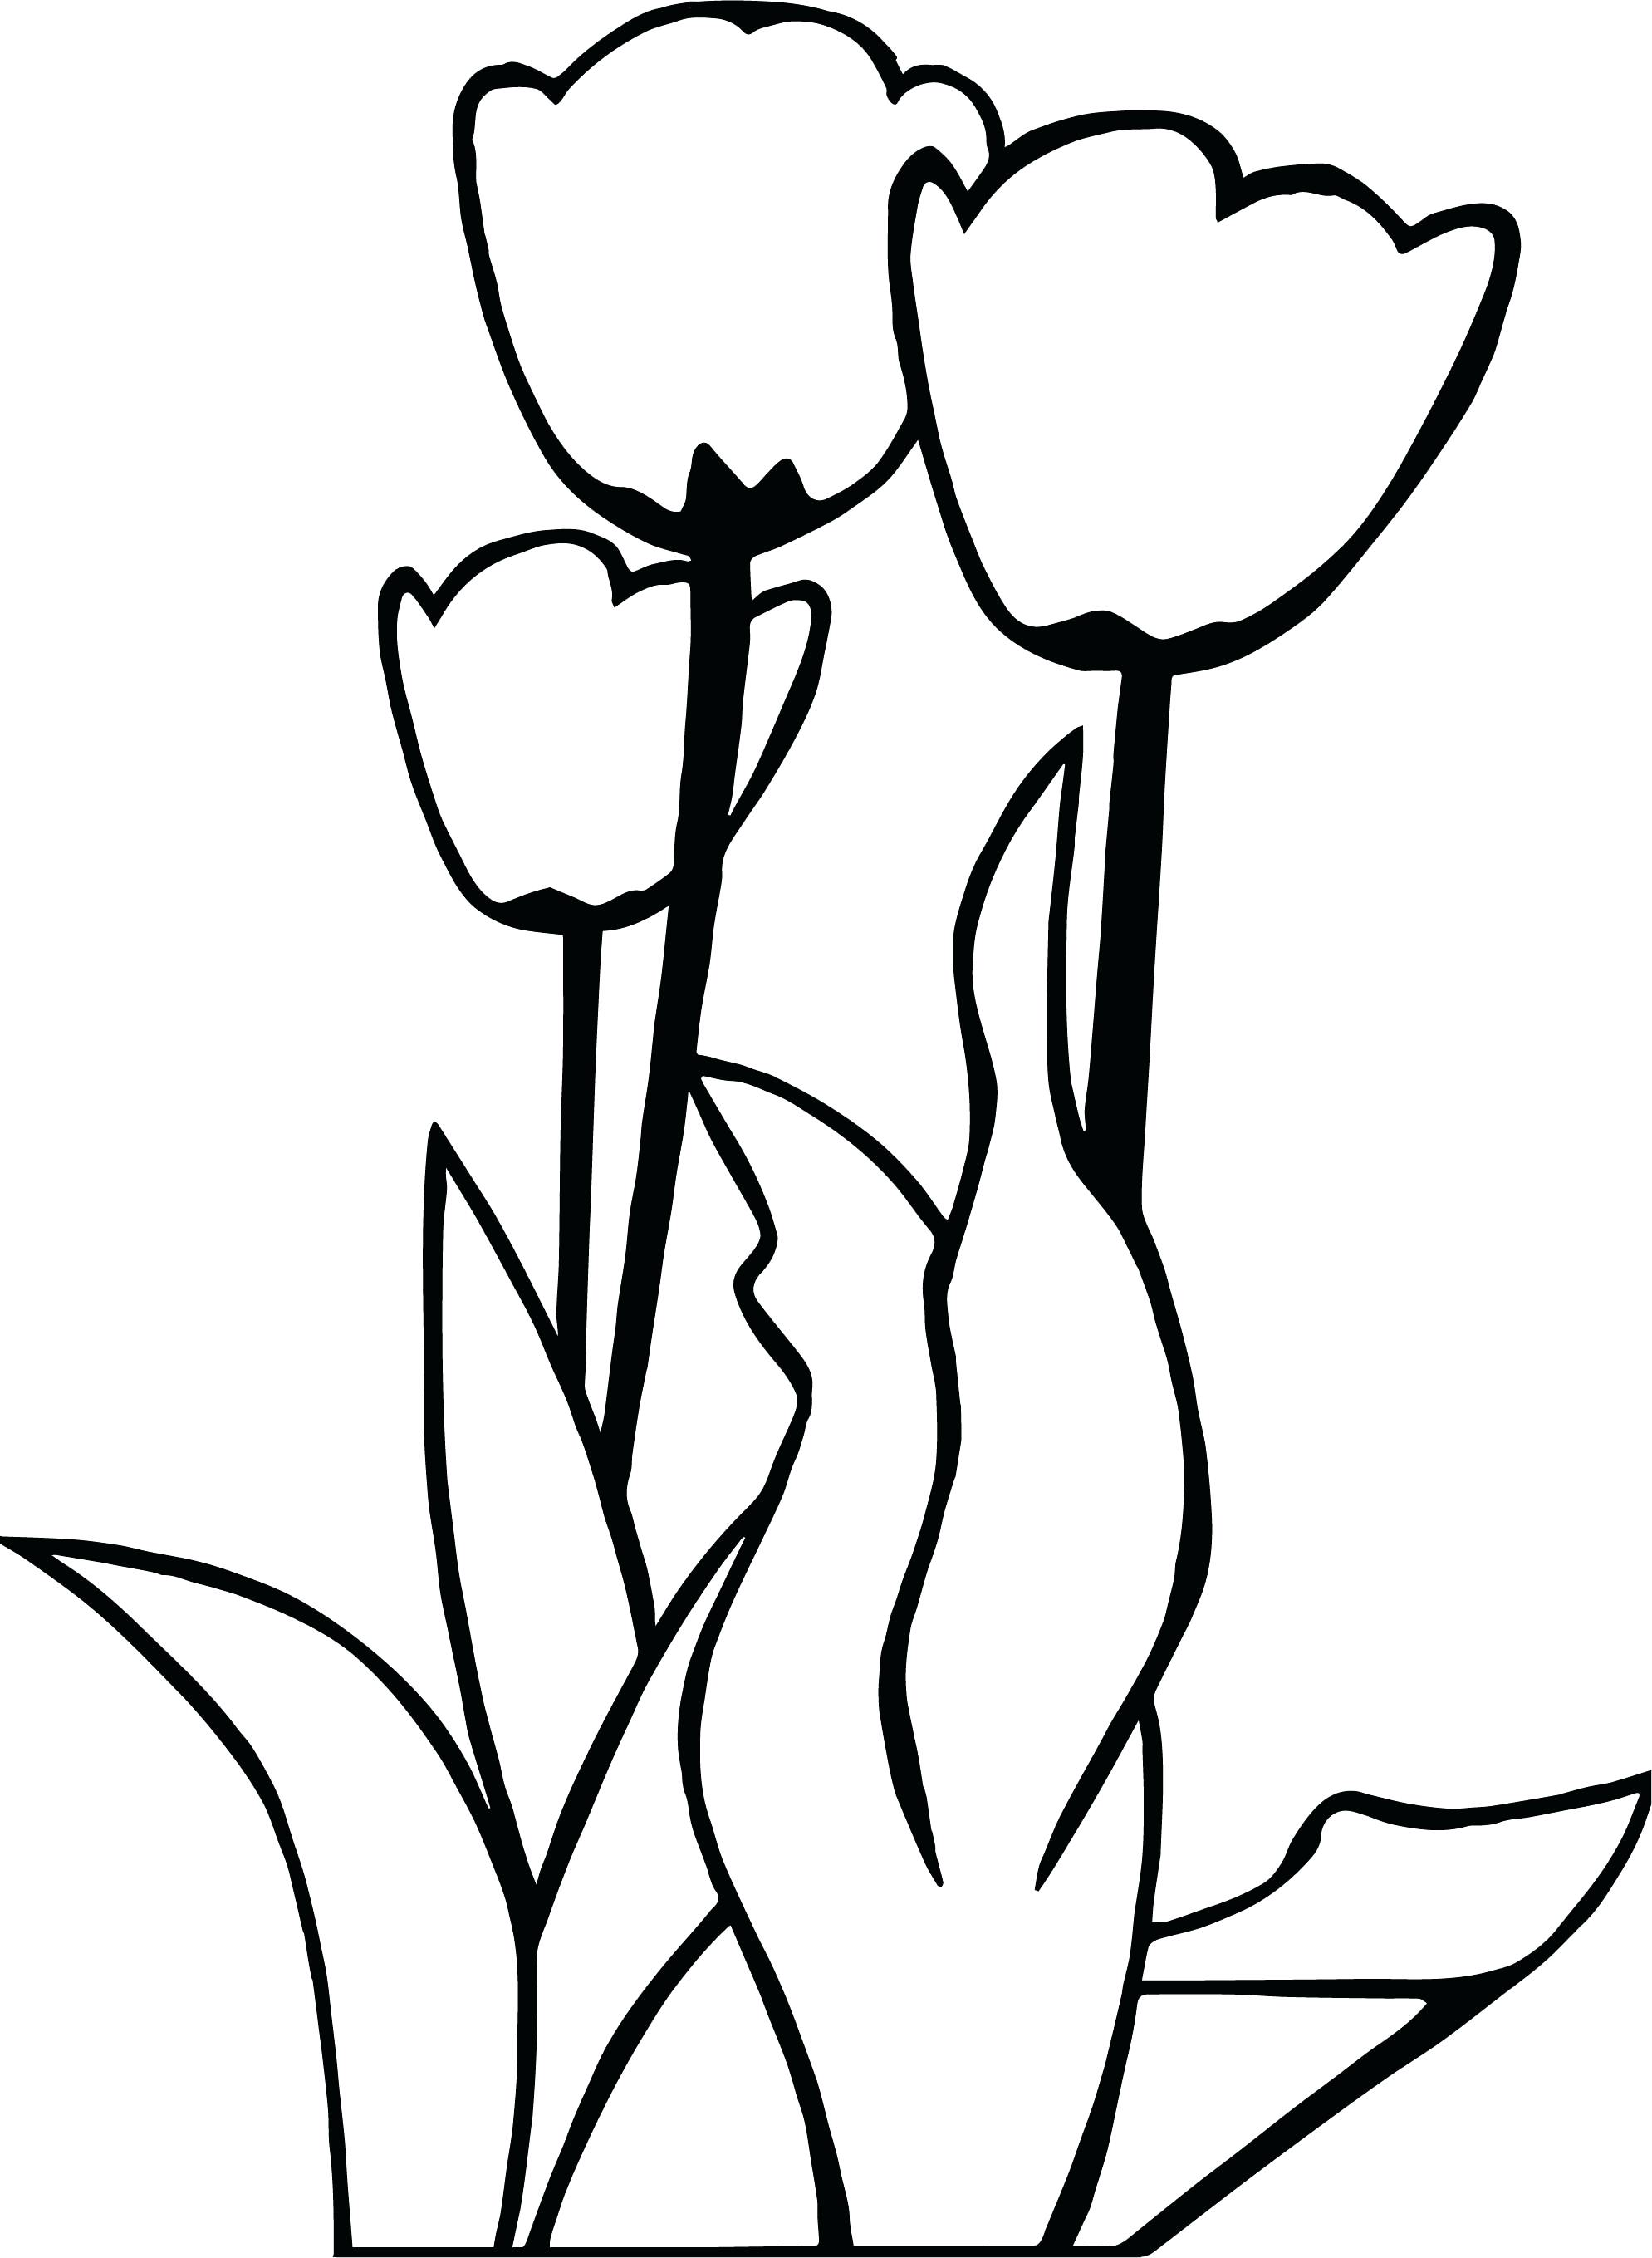 1989x2718 Coloring Tulip Coloring Page Tulips Flower Simple. Tulip Coloring